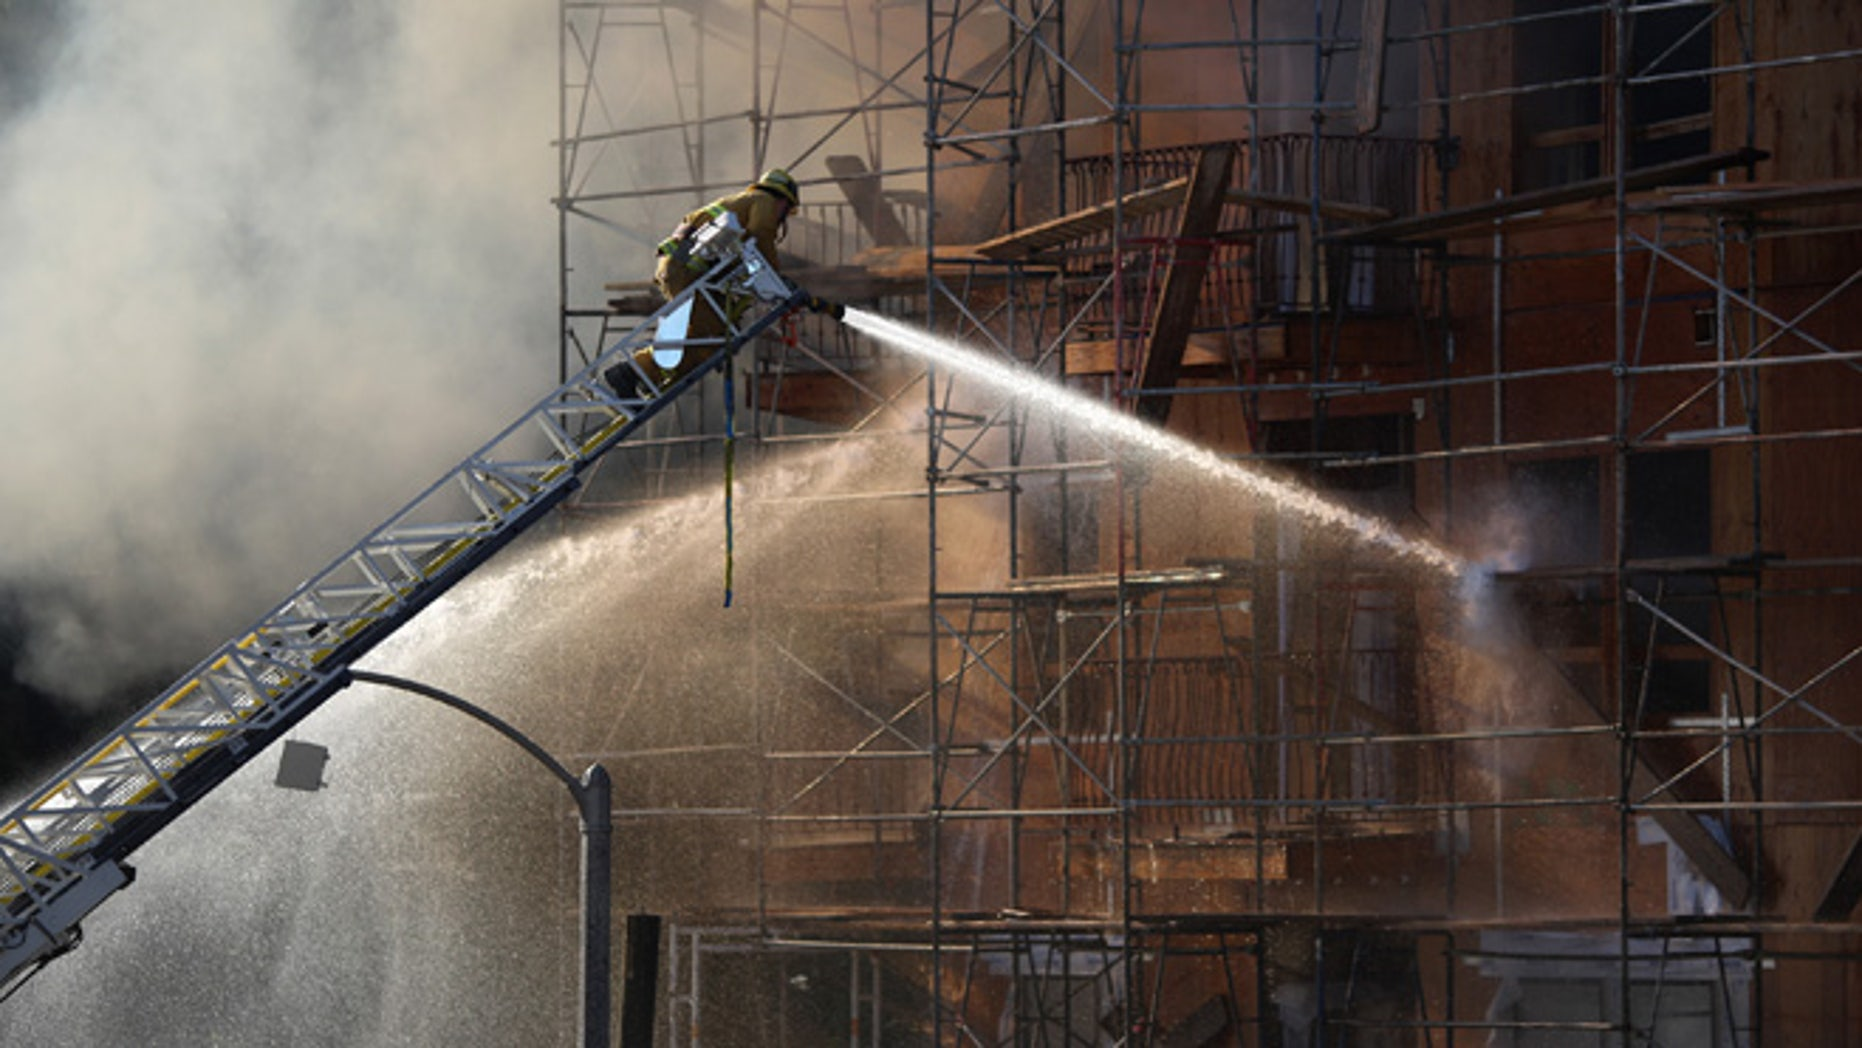 Firefighters battle a fire that destroyed a seven-story apartment building under construction on December 8, 2014 in Los Angeles, California.  (Photo by David McNew/Getty Images)